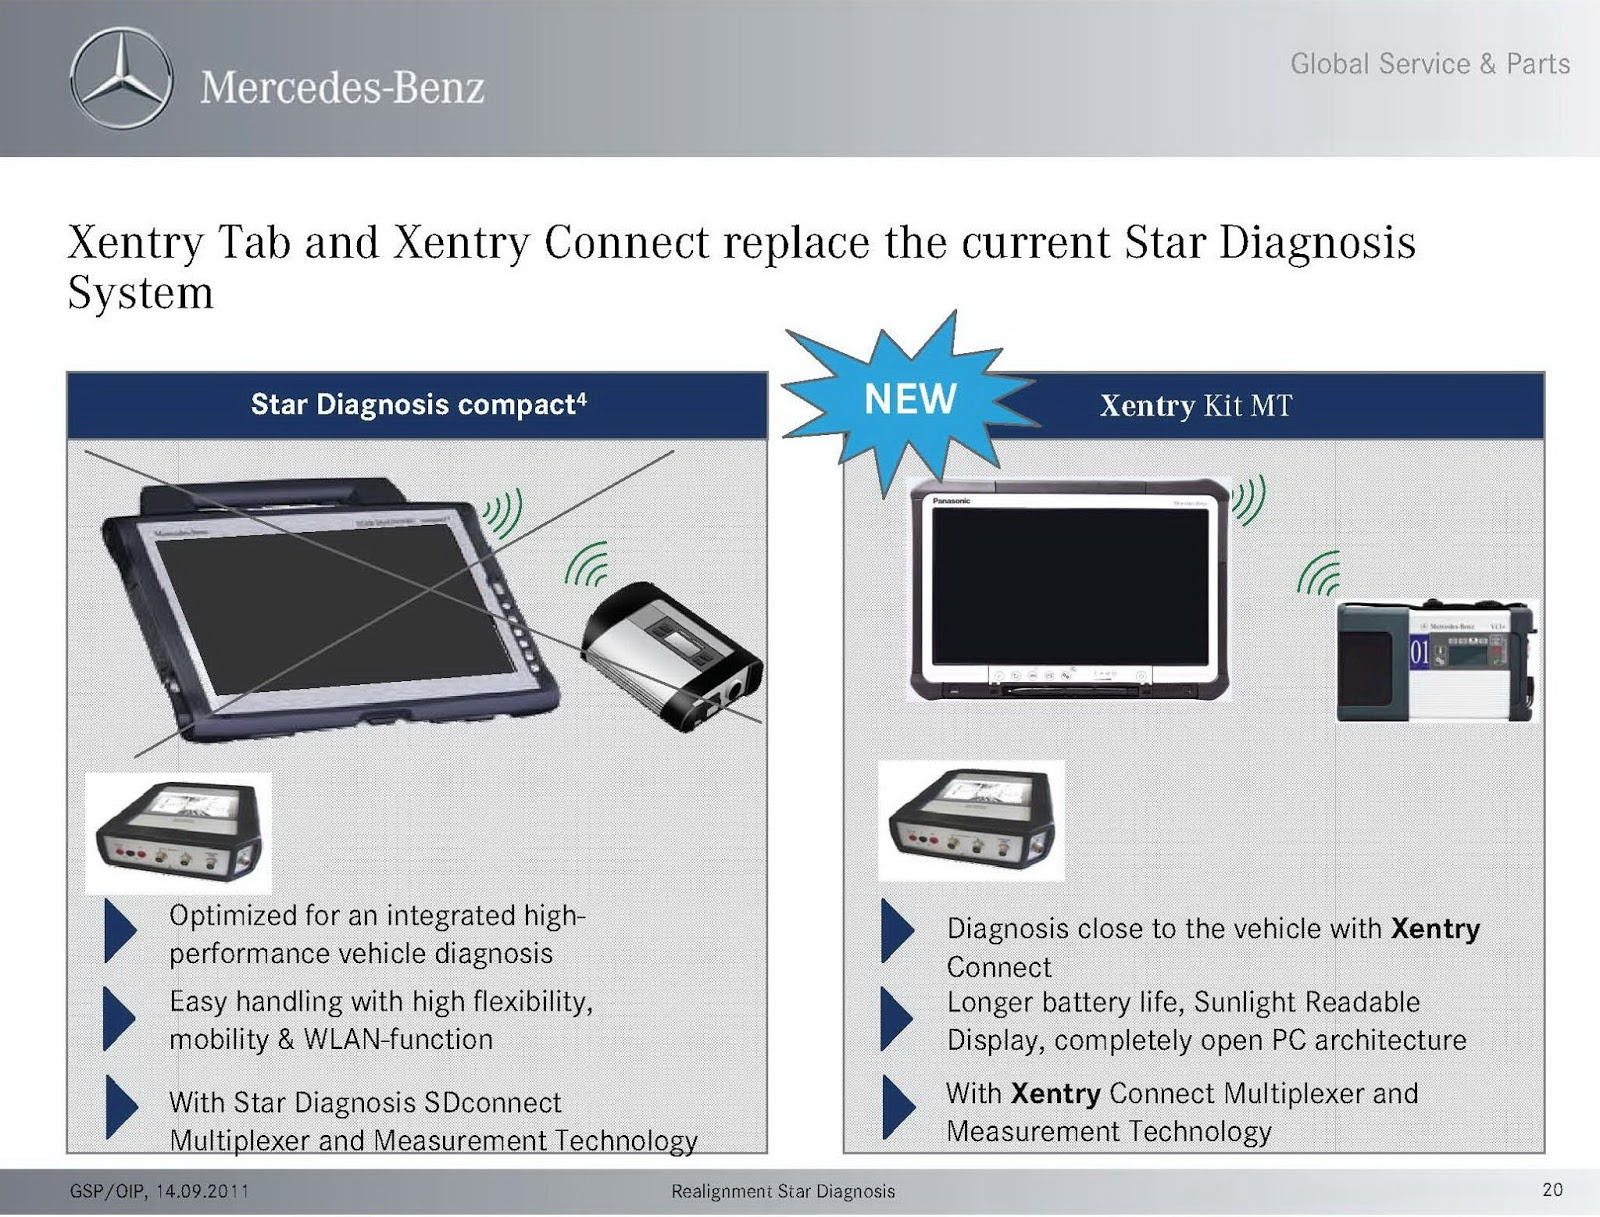 Learning the Automotive: Xentry Connect Diagnostic Tool For Mercedes